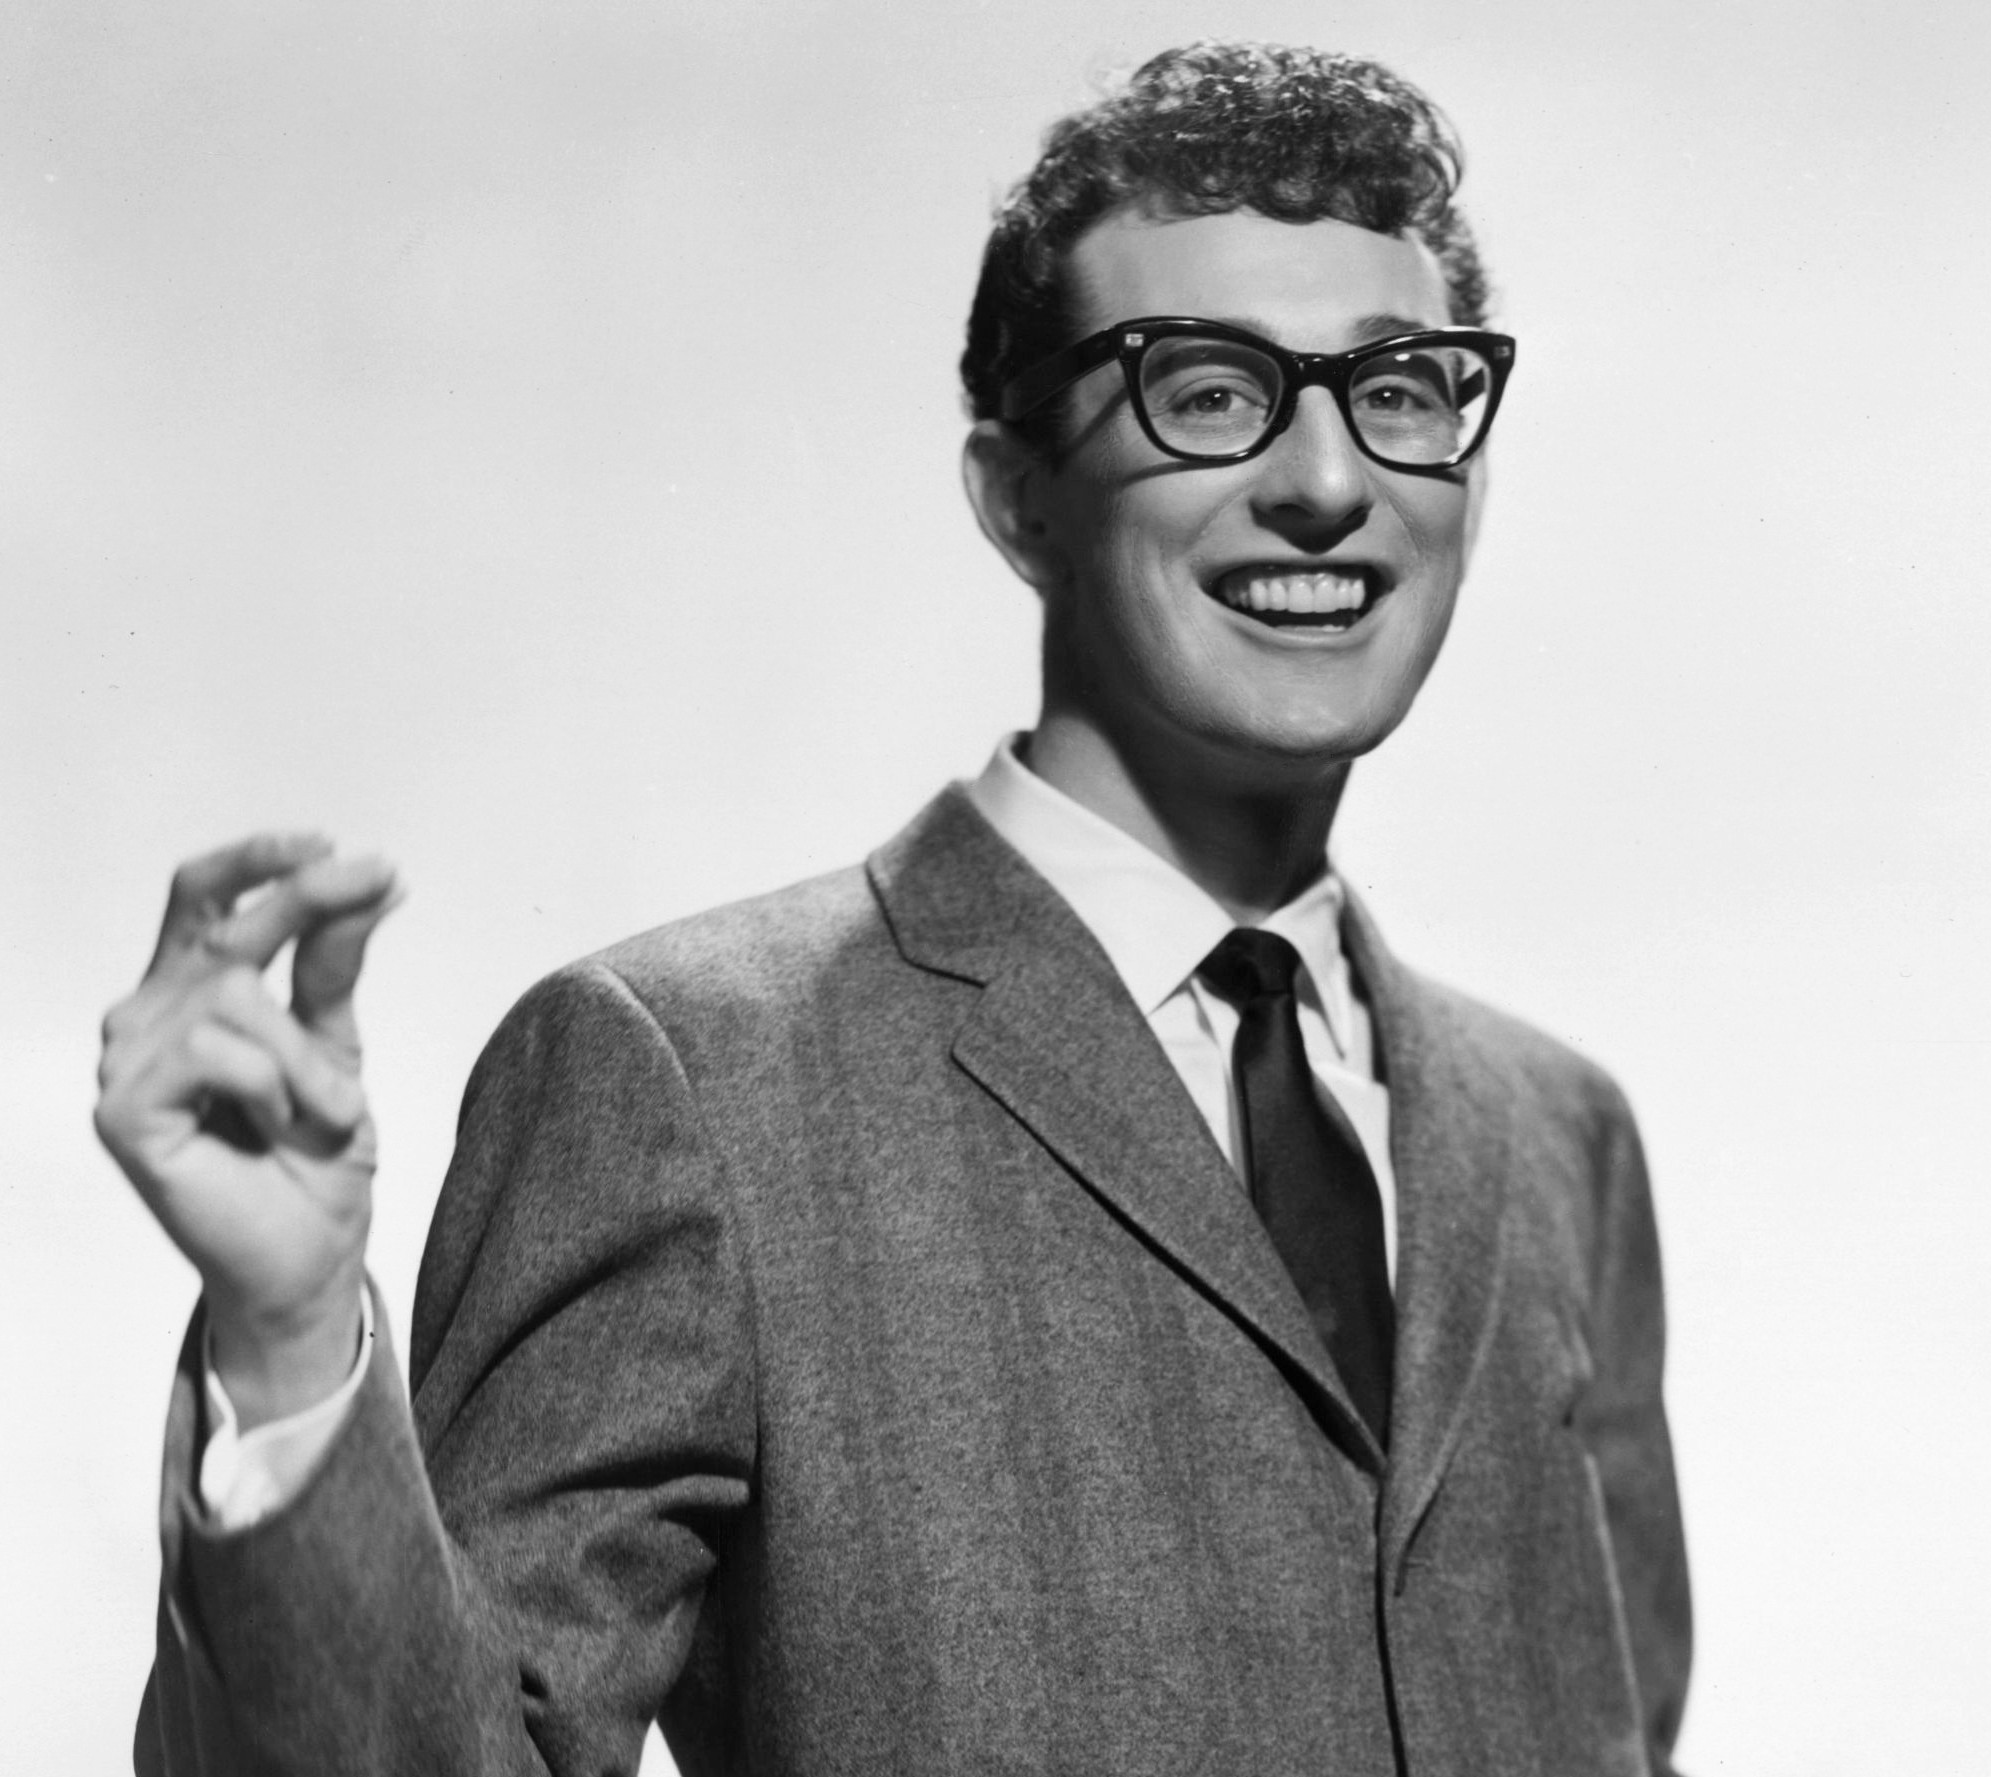 Buddy_Holly_cropped.JPG